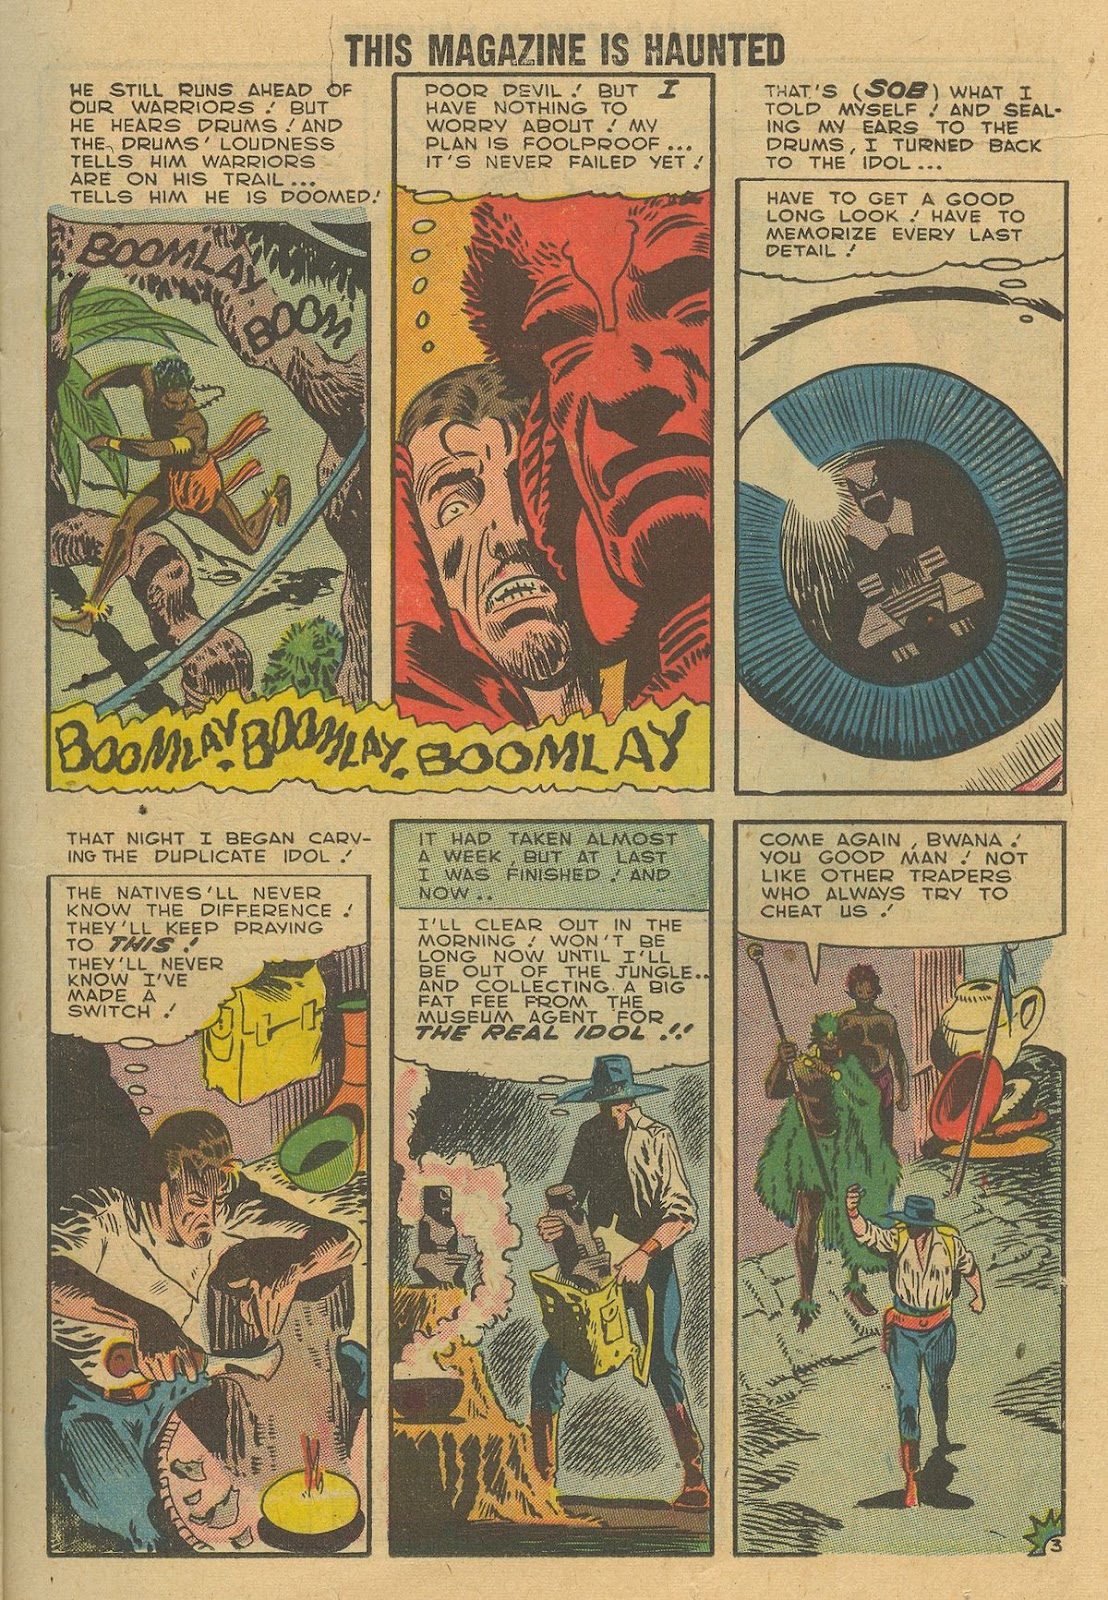 Read online This Magazine Is Haunted comic -  Issue #13 - 11